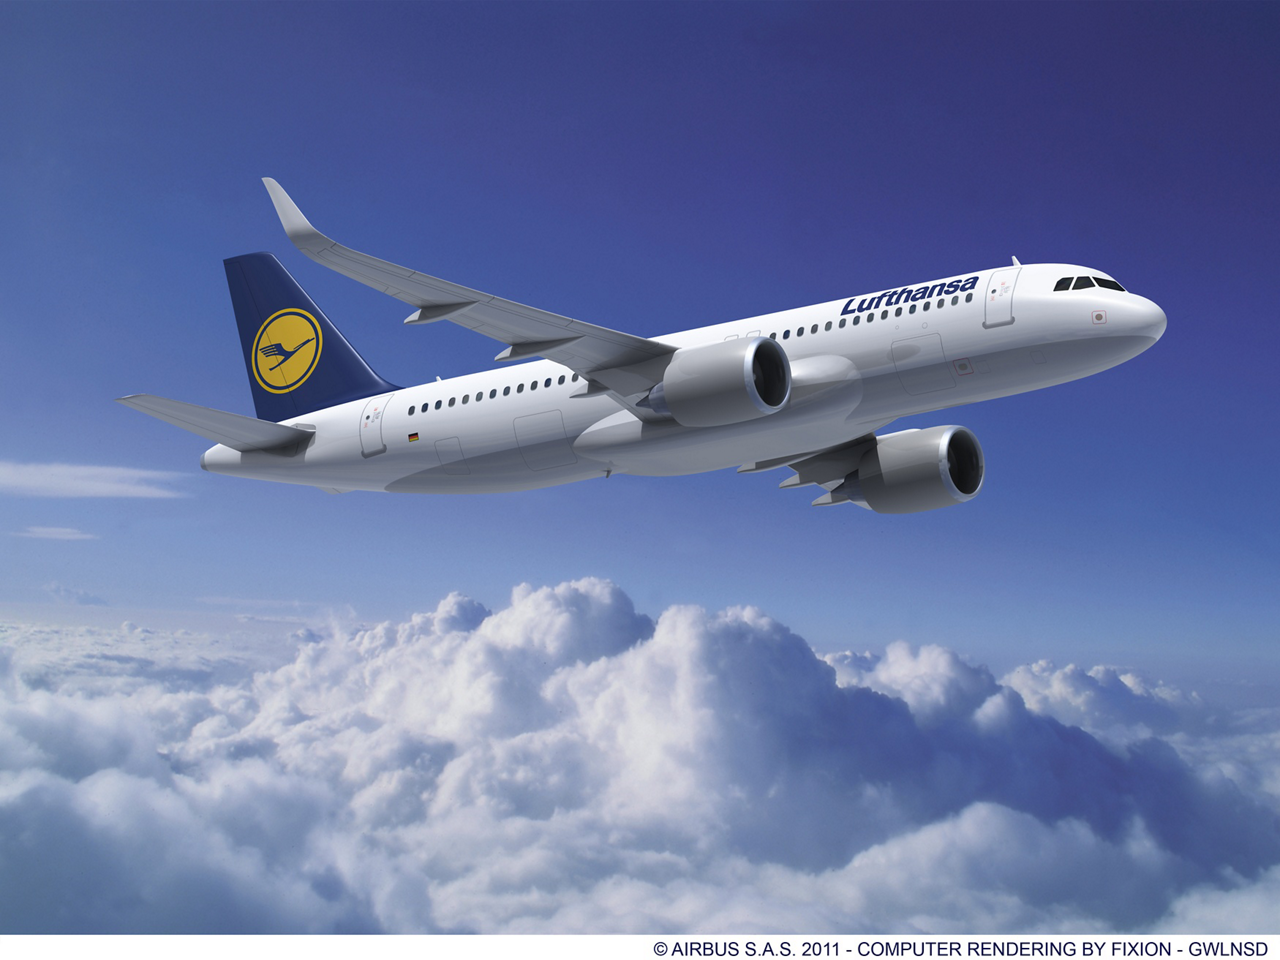 The Lufthansa's Supervisory Board has approved the acquisition of 100 A320 Family aircraft (35 A320neo, 35 A321neo and 30 A320ceo with Sharklets) and two A380s worth approximately US$ 11.2 billion at list prices.